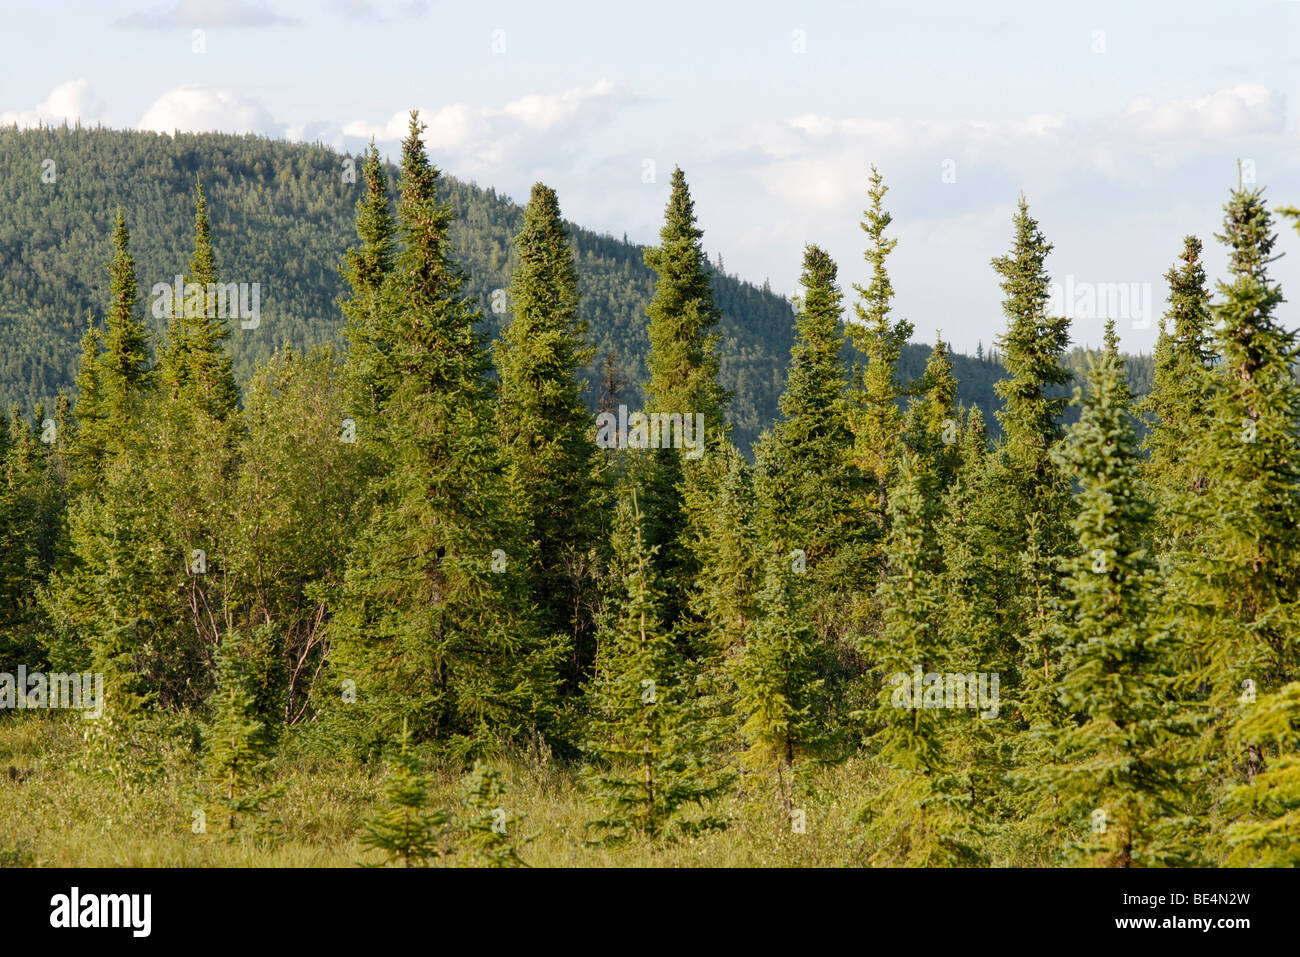 Black spruce, Picea mariana, forest.  Boreal forest, taiga. Stock Photo